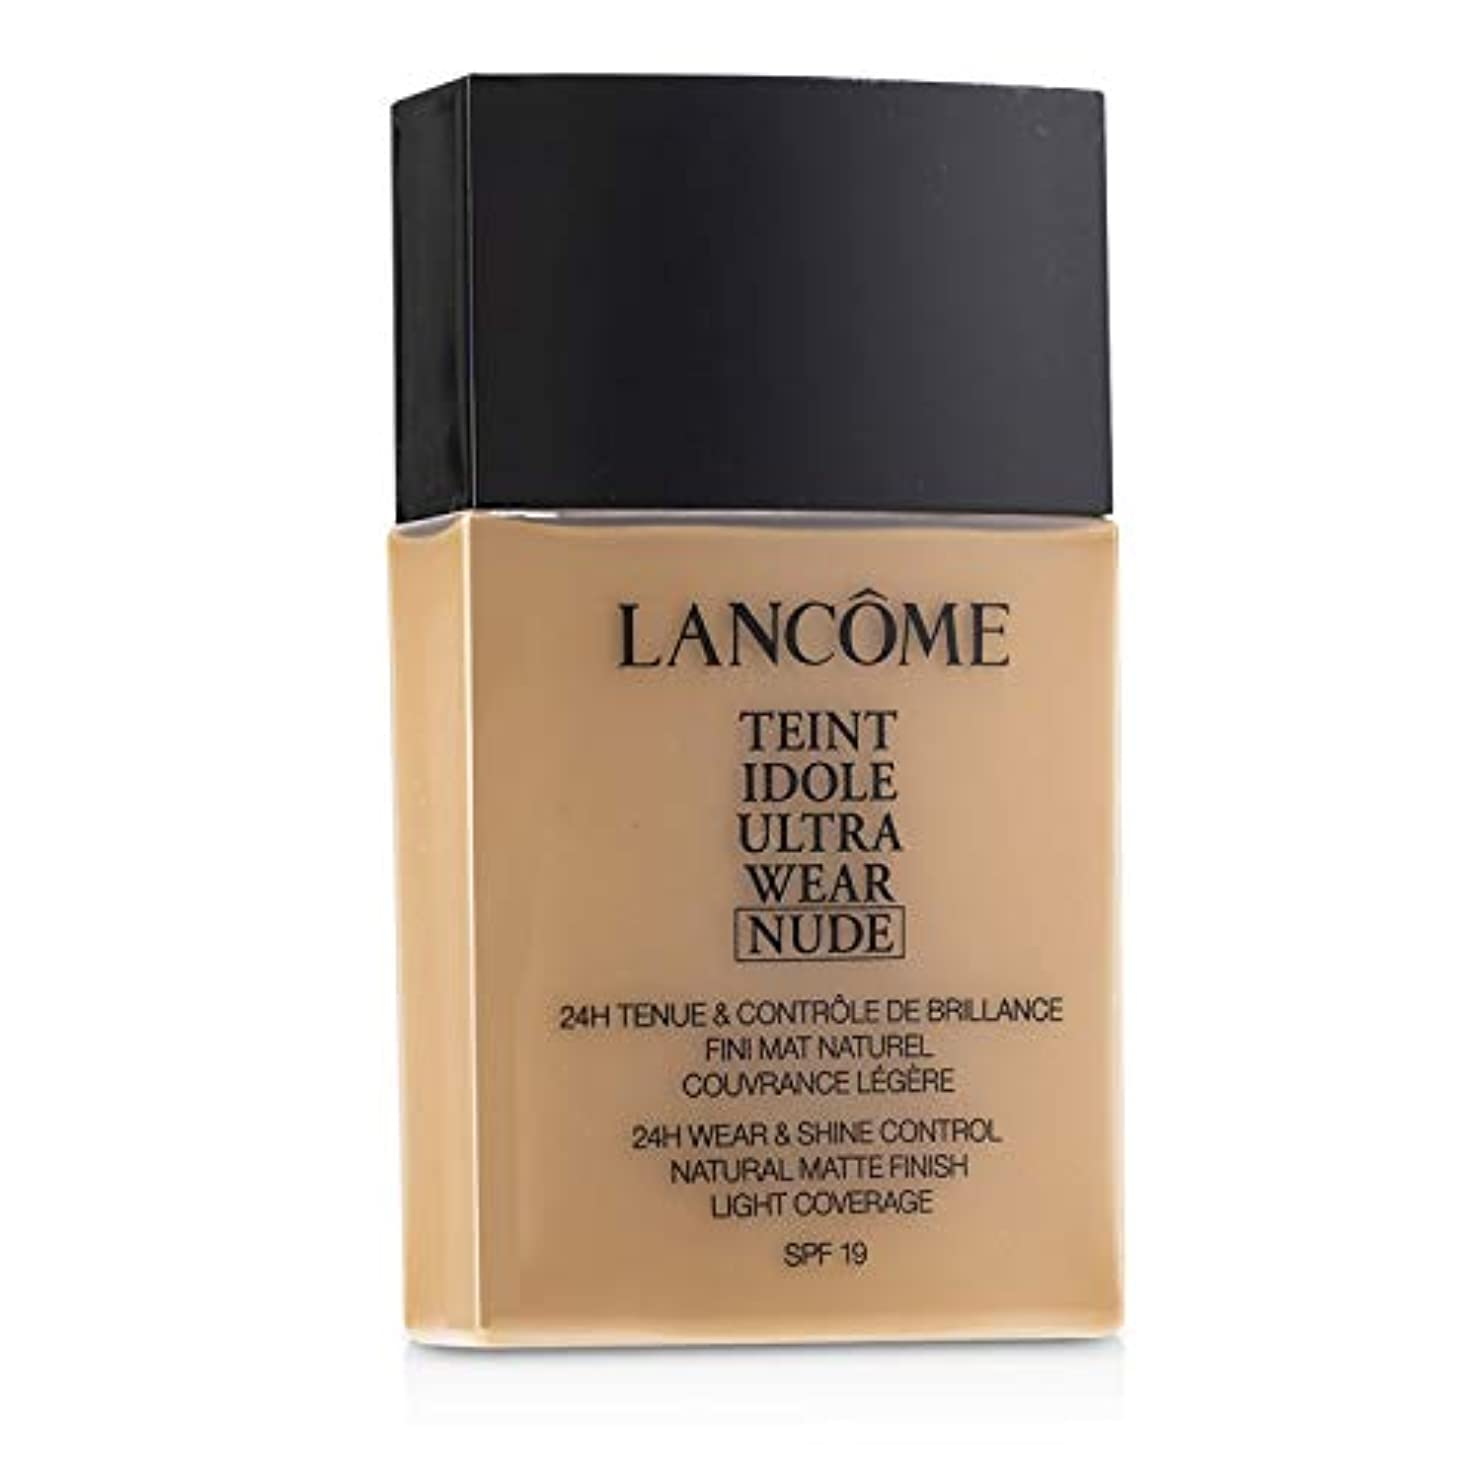 話す秋株式会社ランコム Teint Idole Ultra Wear Nude Foundation SPF19 - # 05 Beige Noisette 40ml/1.3oz並行輸入品